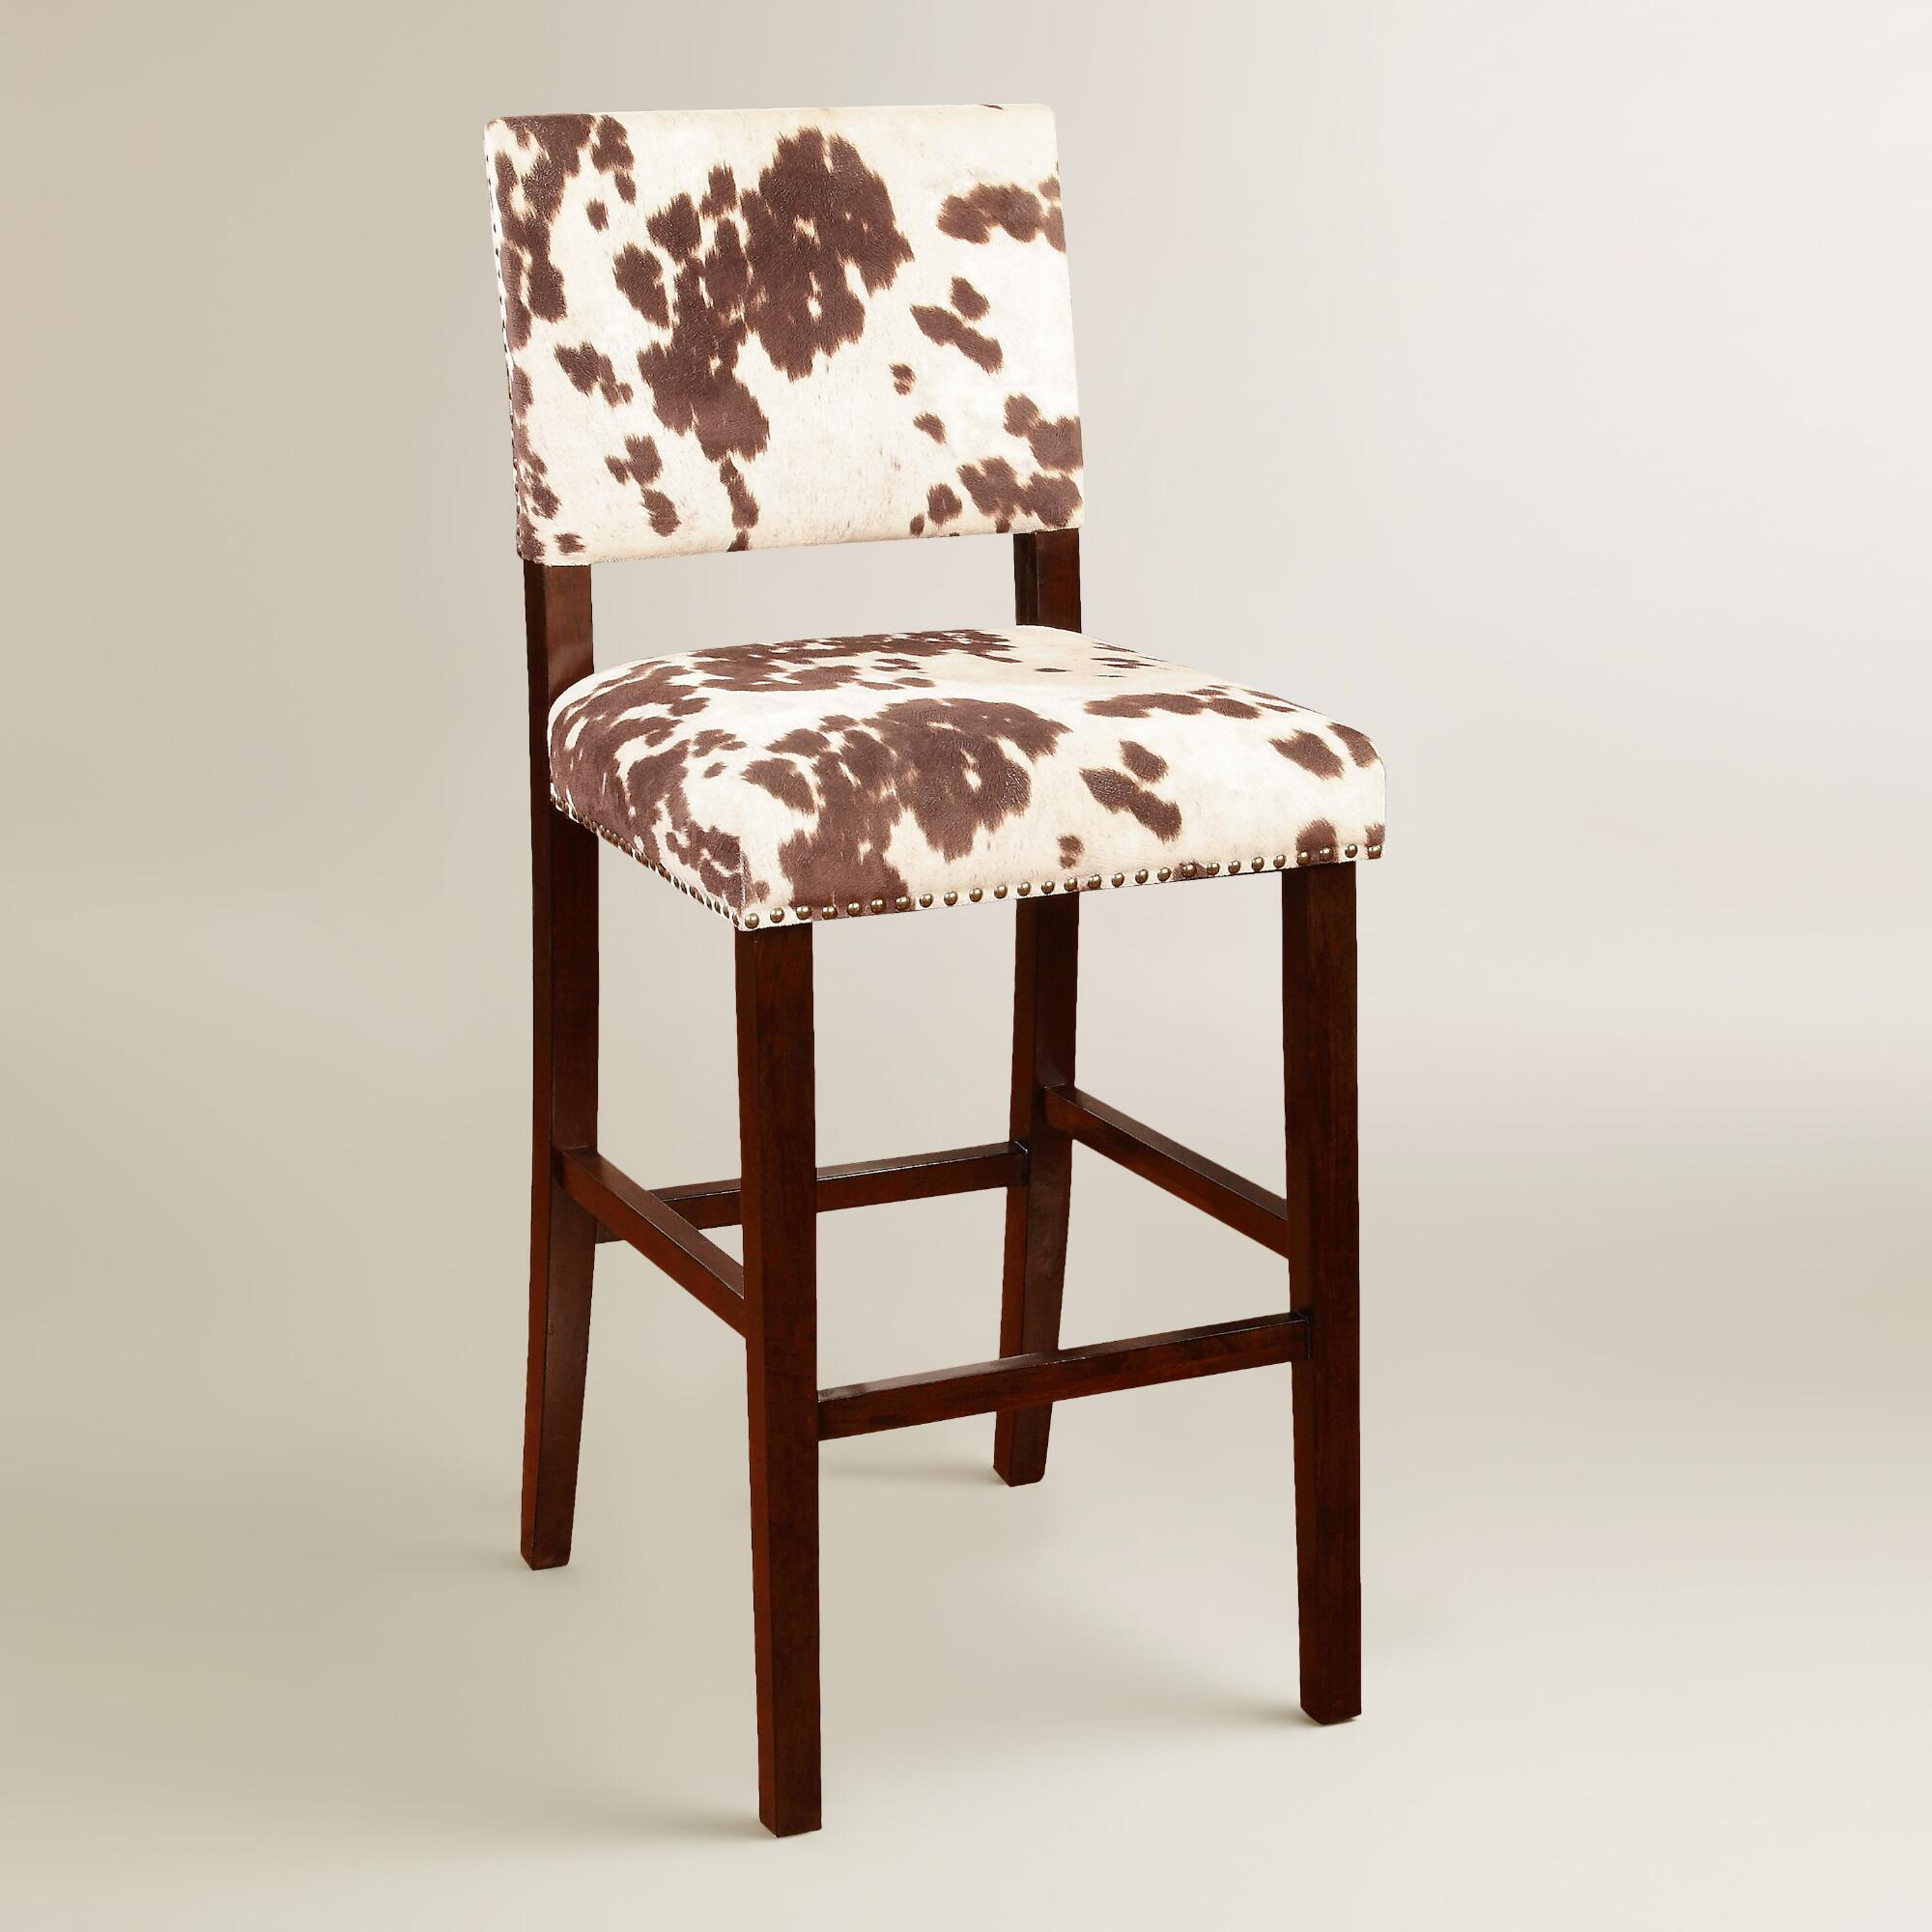 Cow Print Chair Have A Cow Print Chair For Interior With Sweet Milky